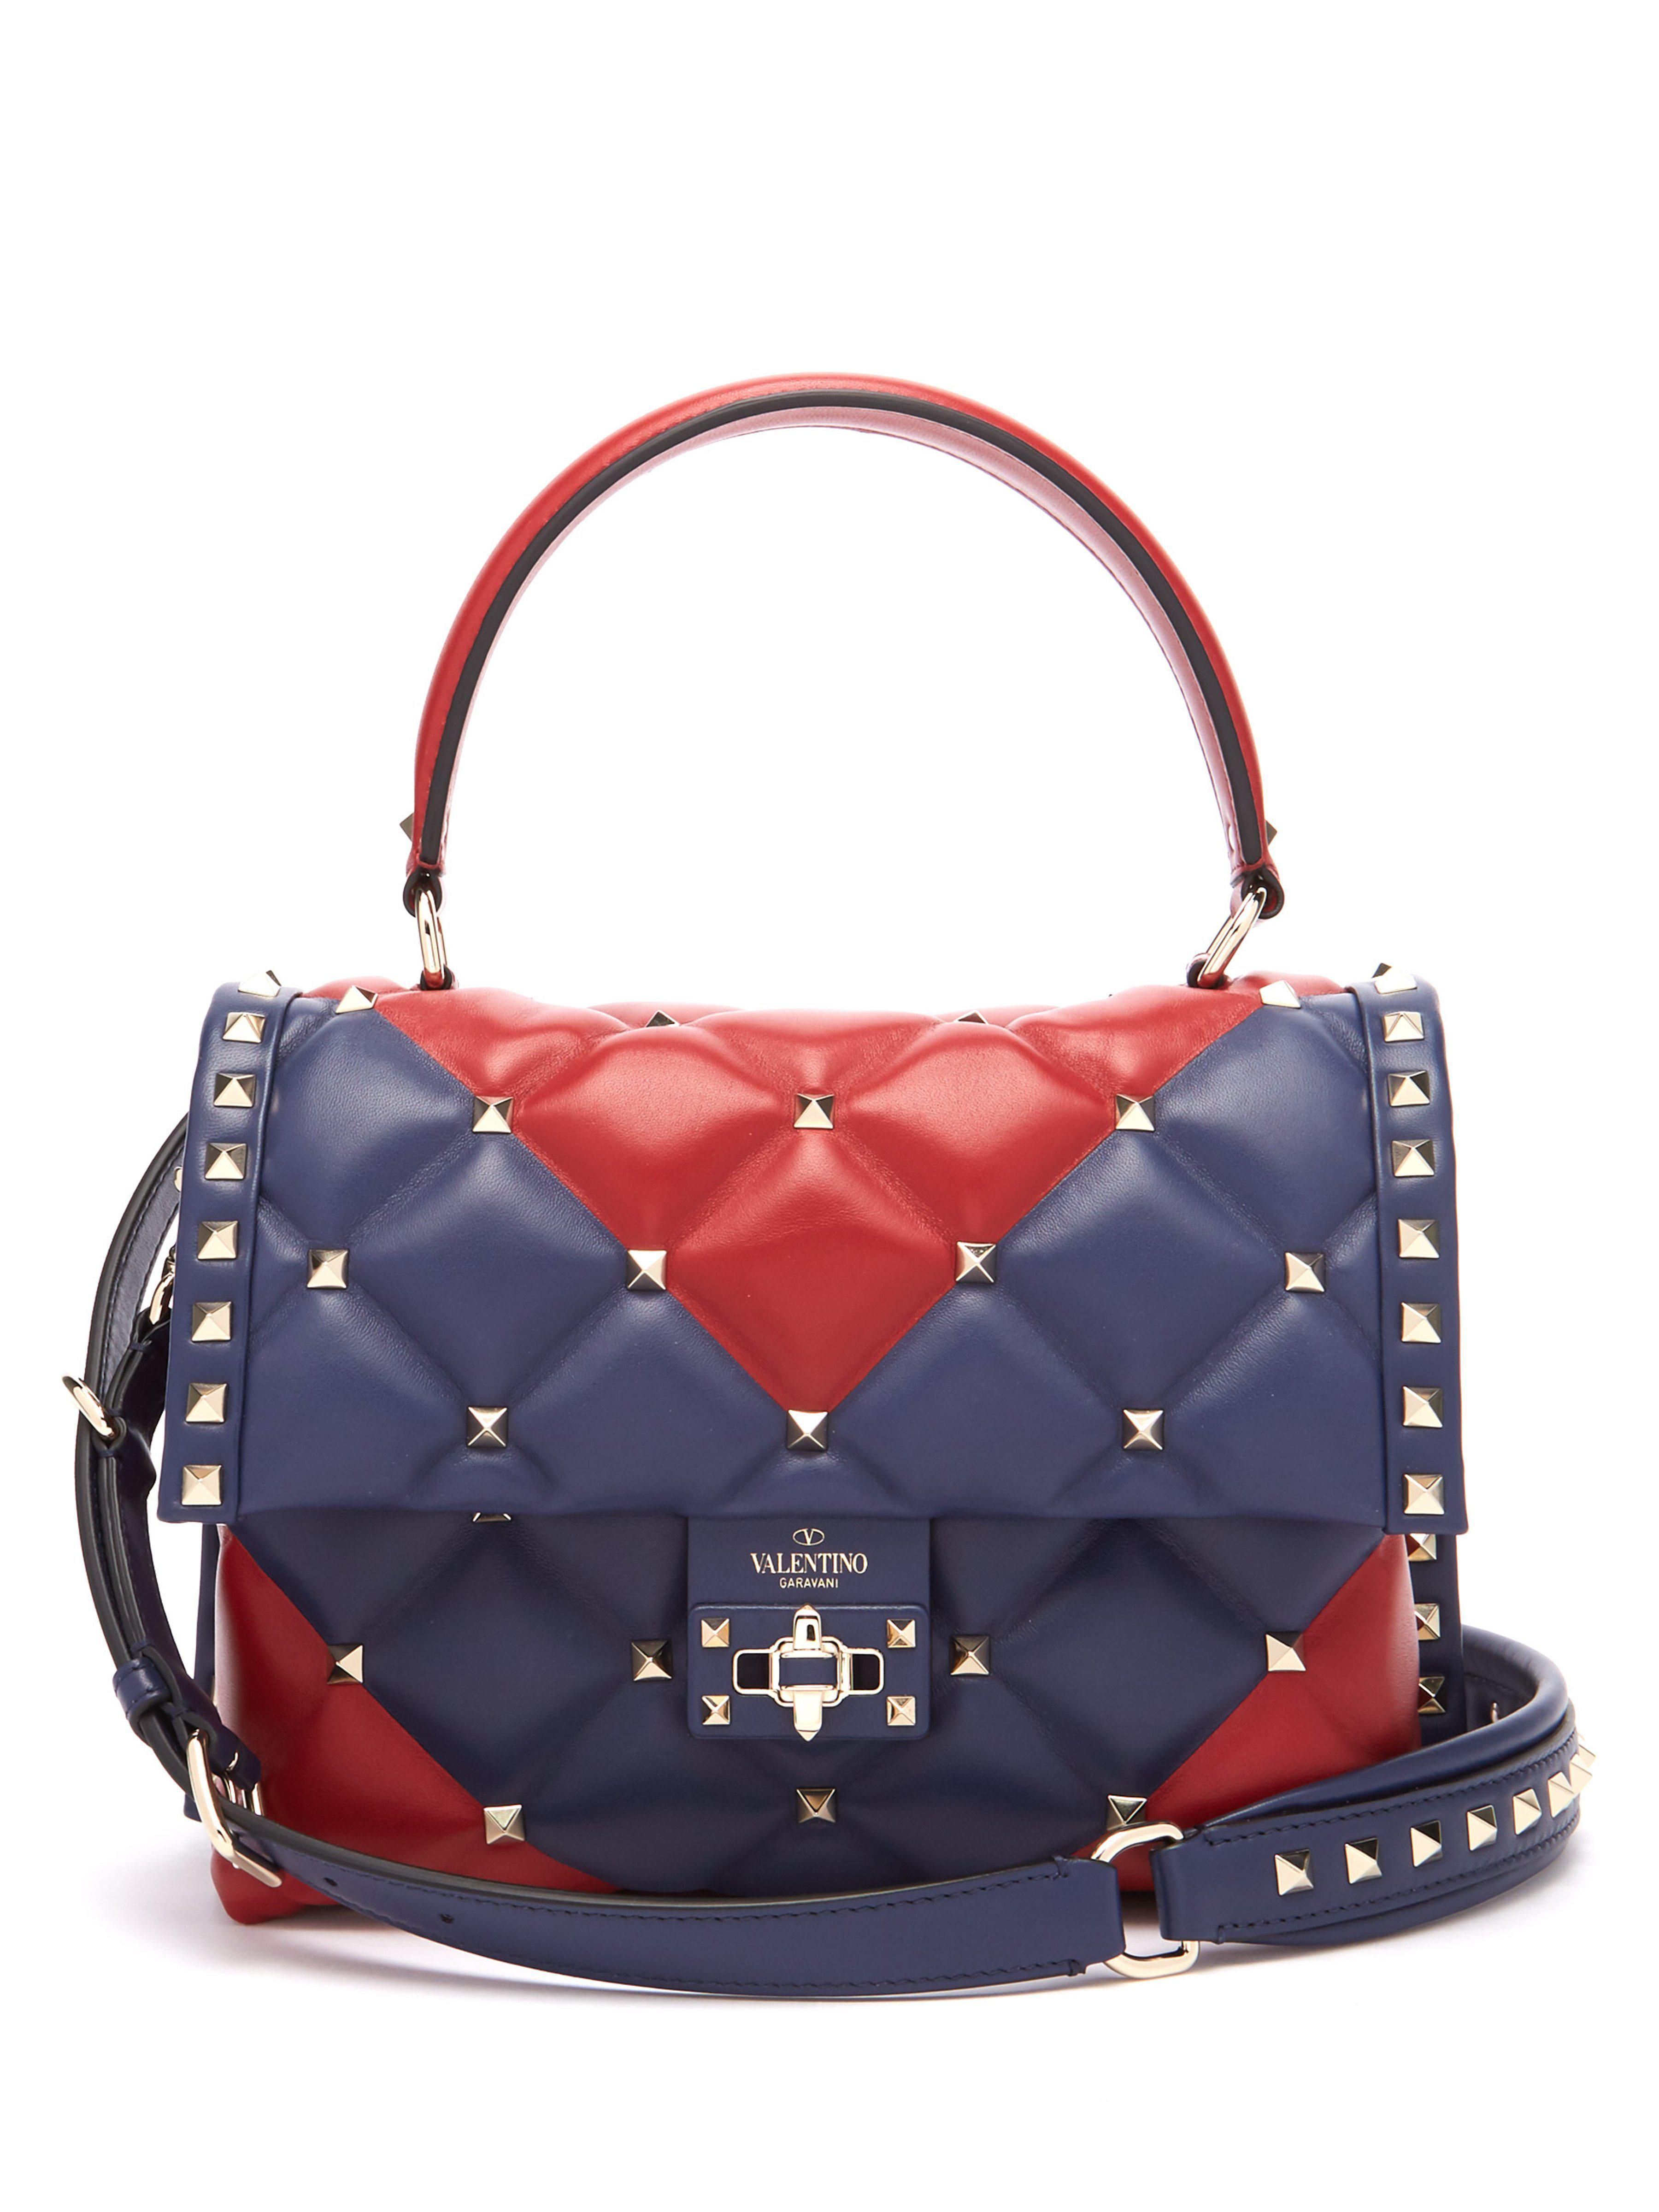 806f5c4b2d Candystud Quilted Leather Cross Body Bag - Multicolor - Valentino Shoulder  bags